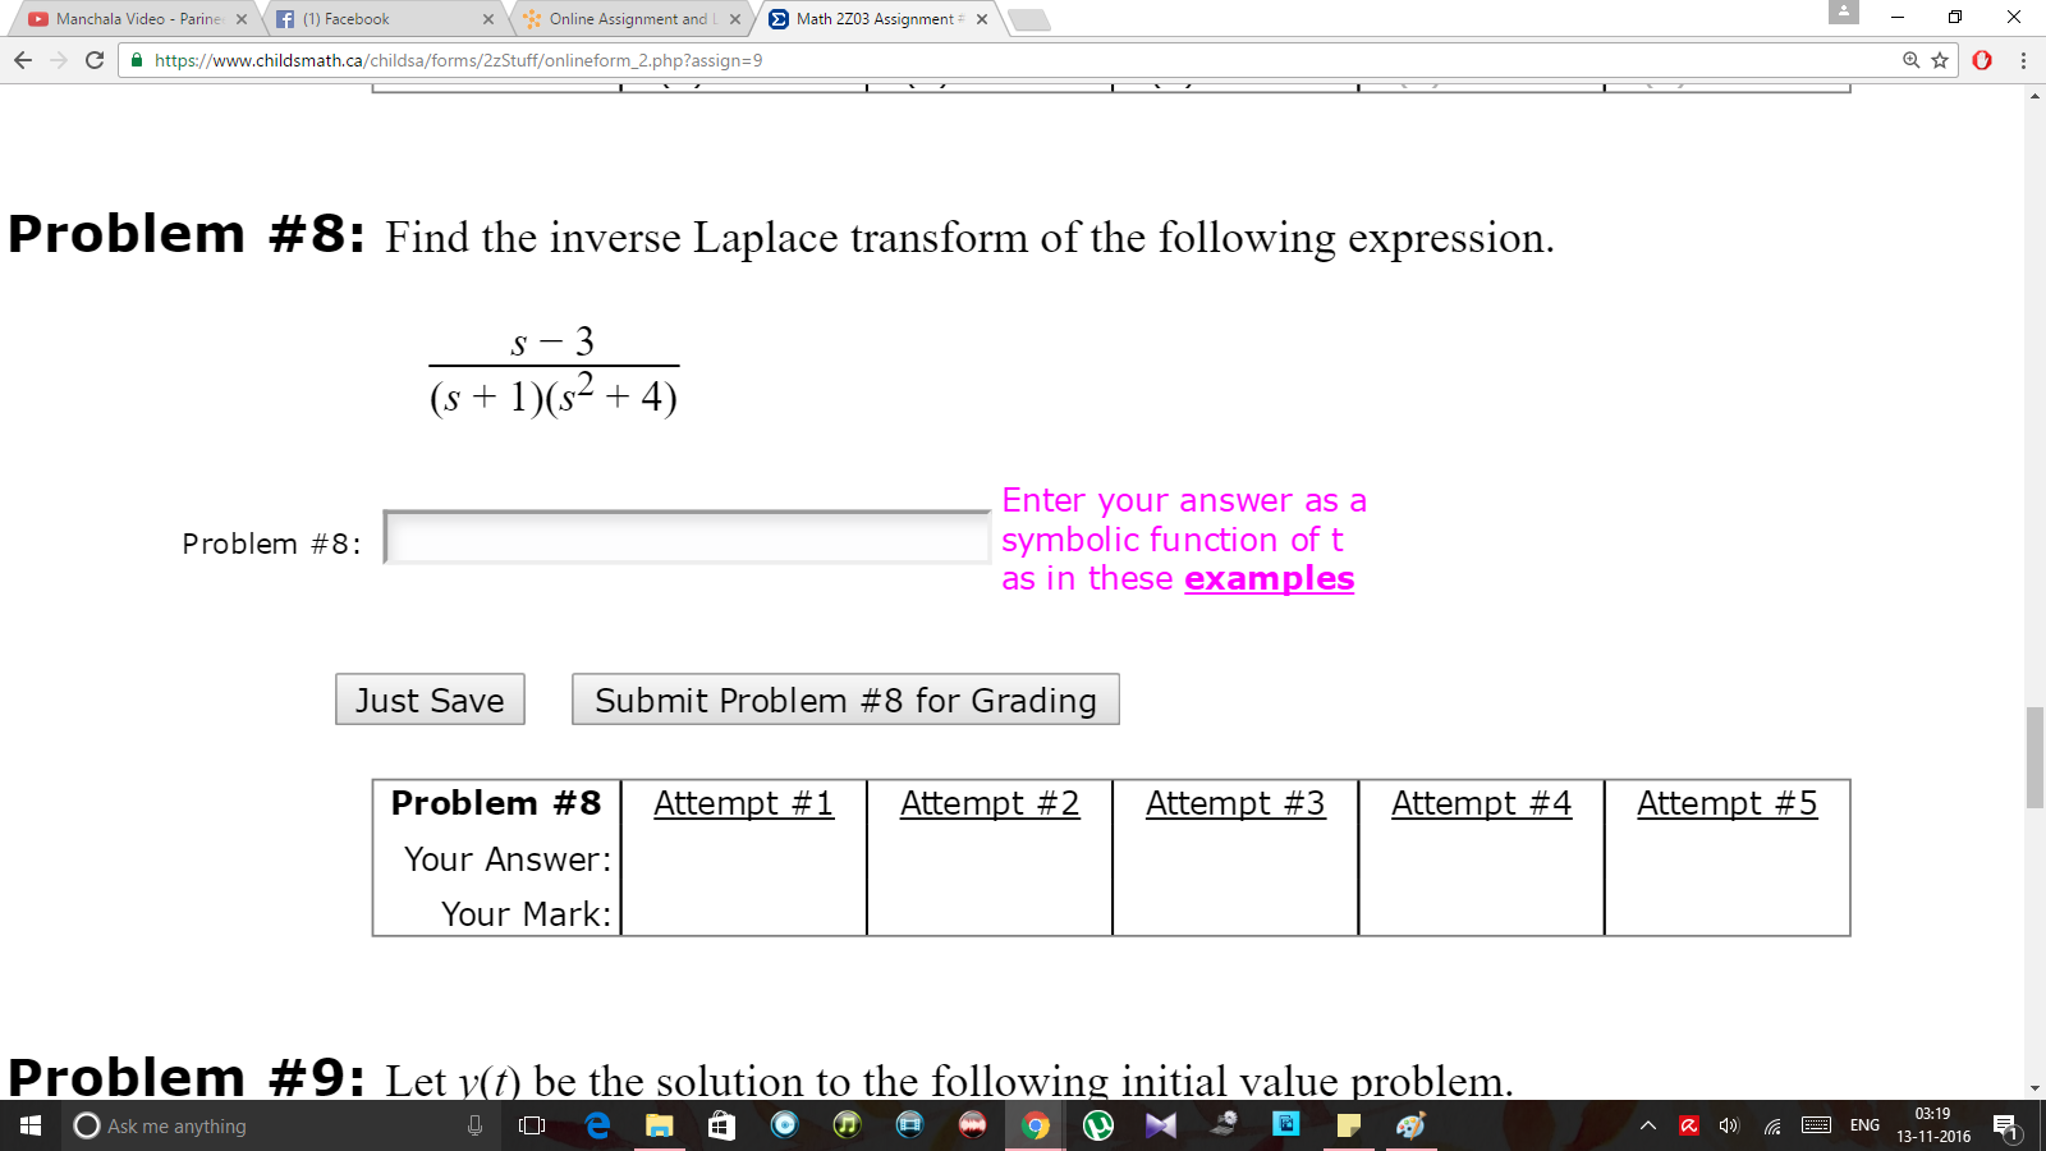 Solved X Online Assignment And L X Y E Math 2203 Assignme